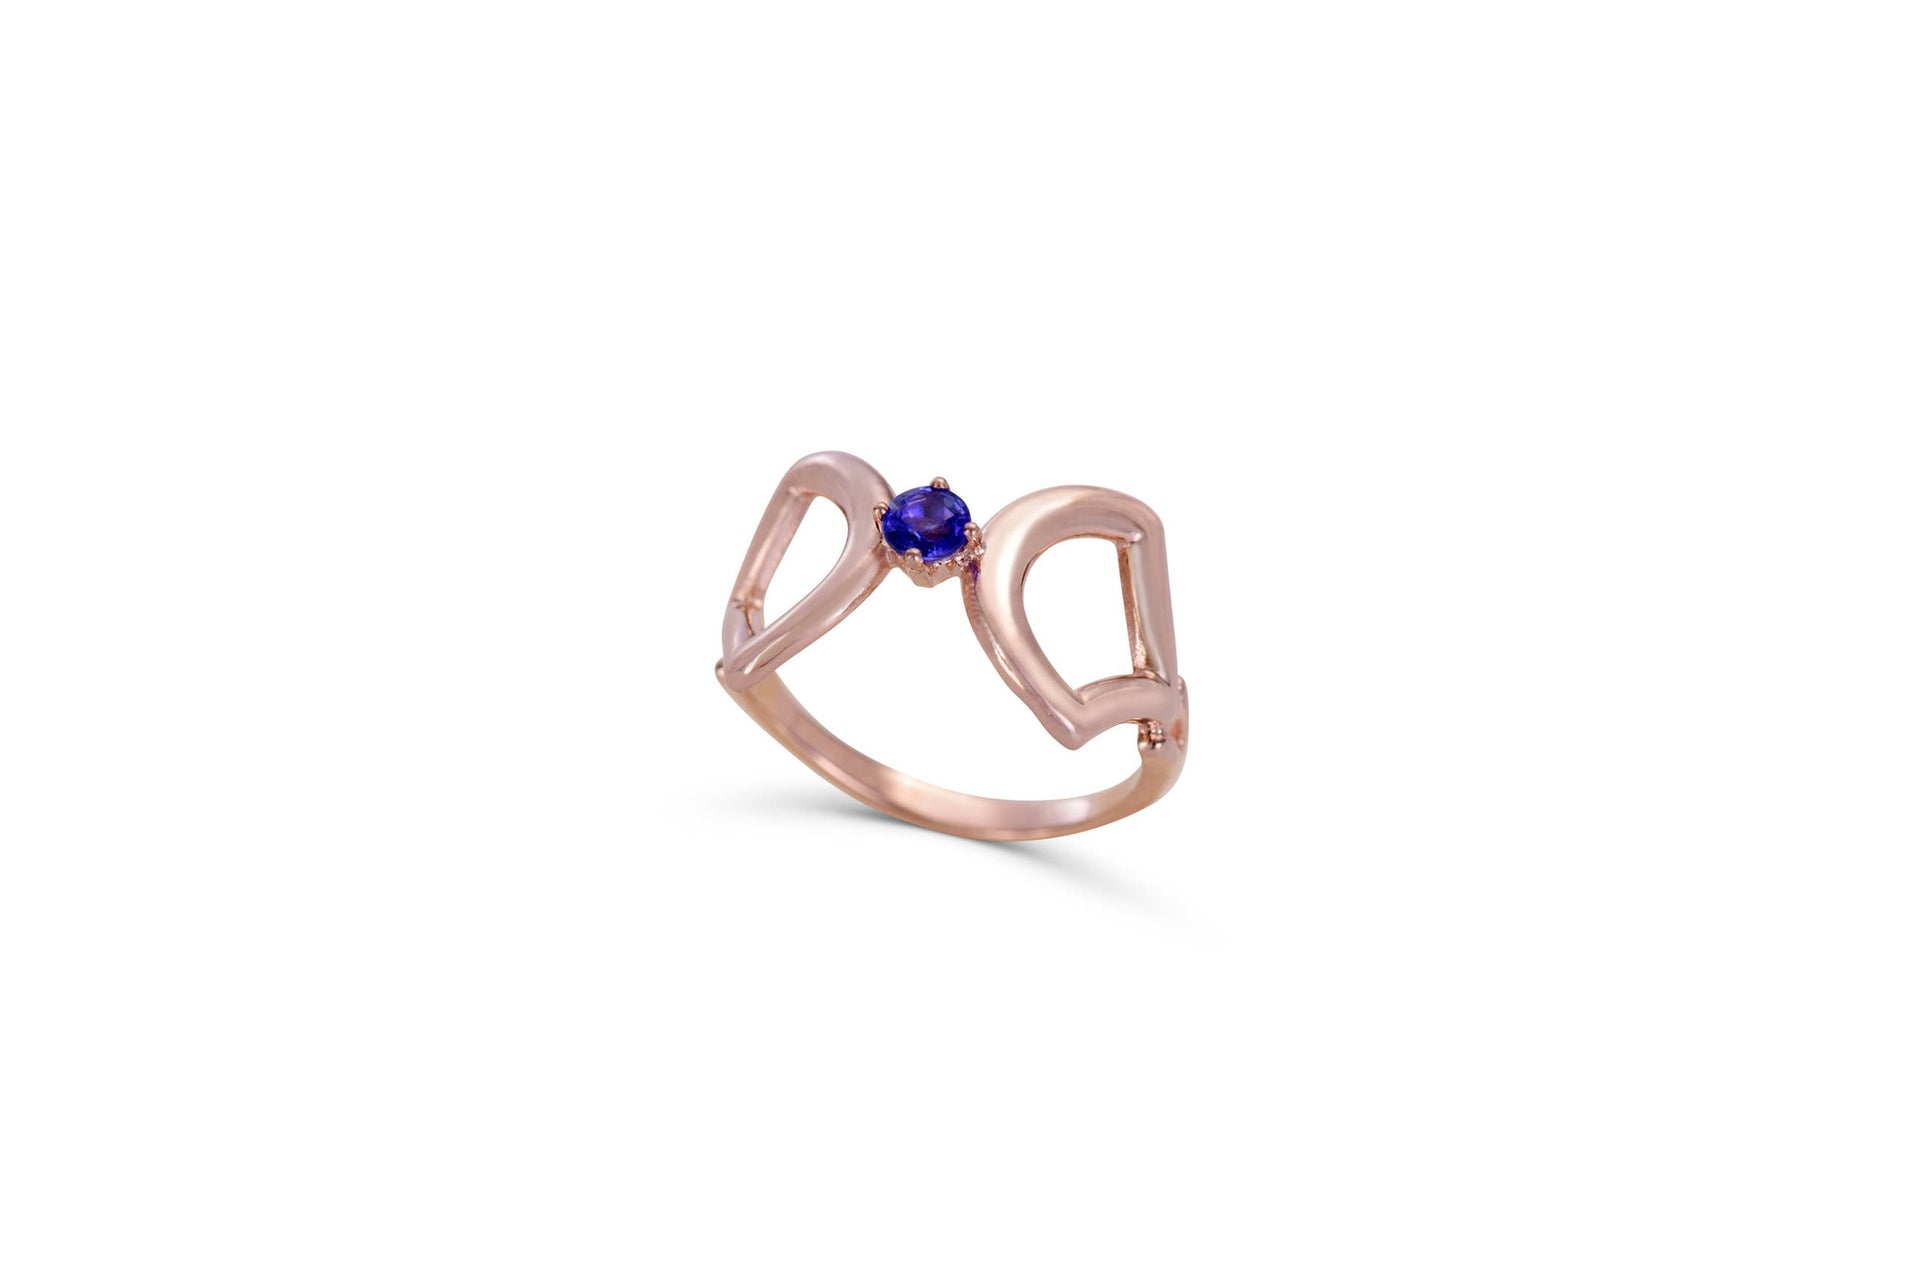 Papillon Rose gold ring with tanzanite by KarenAsh New York